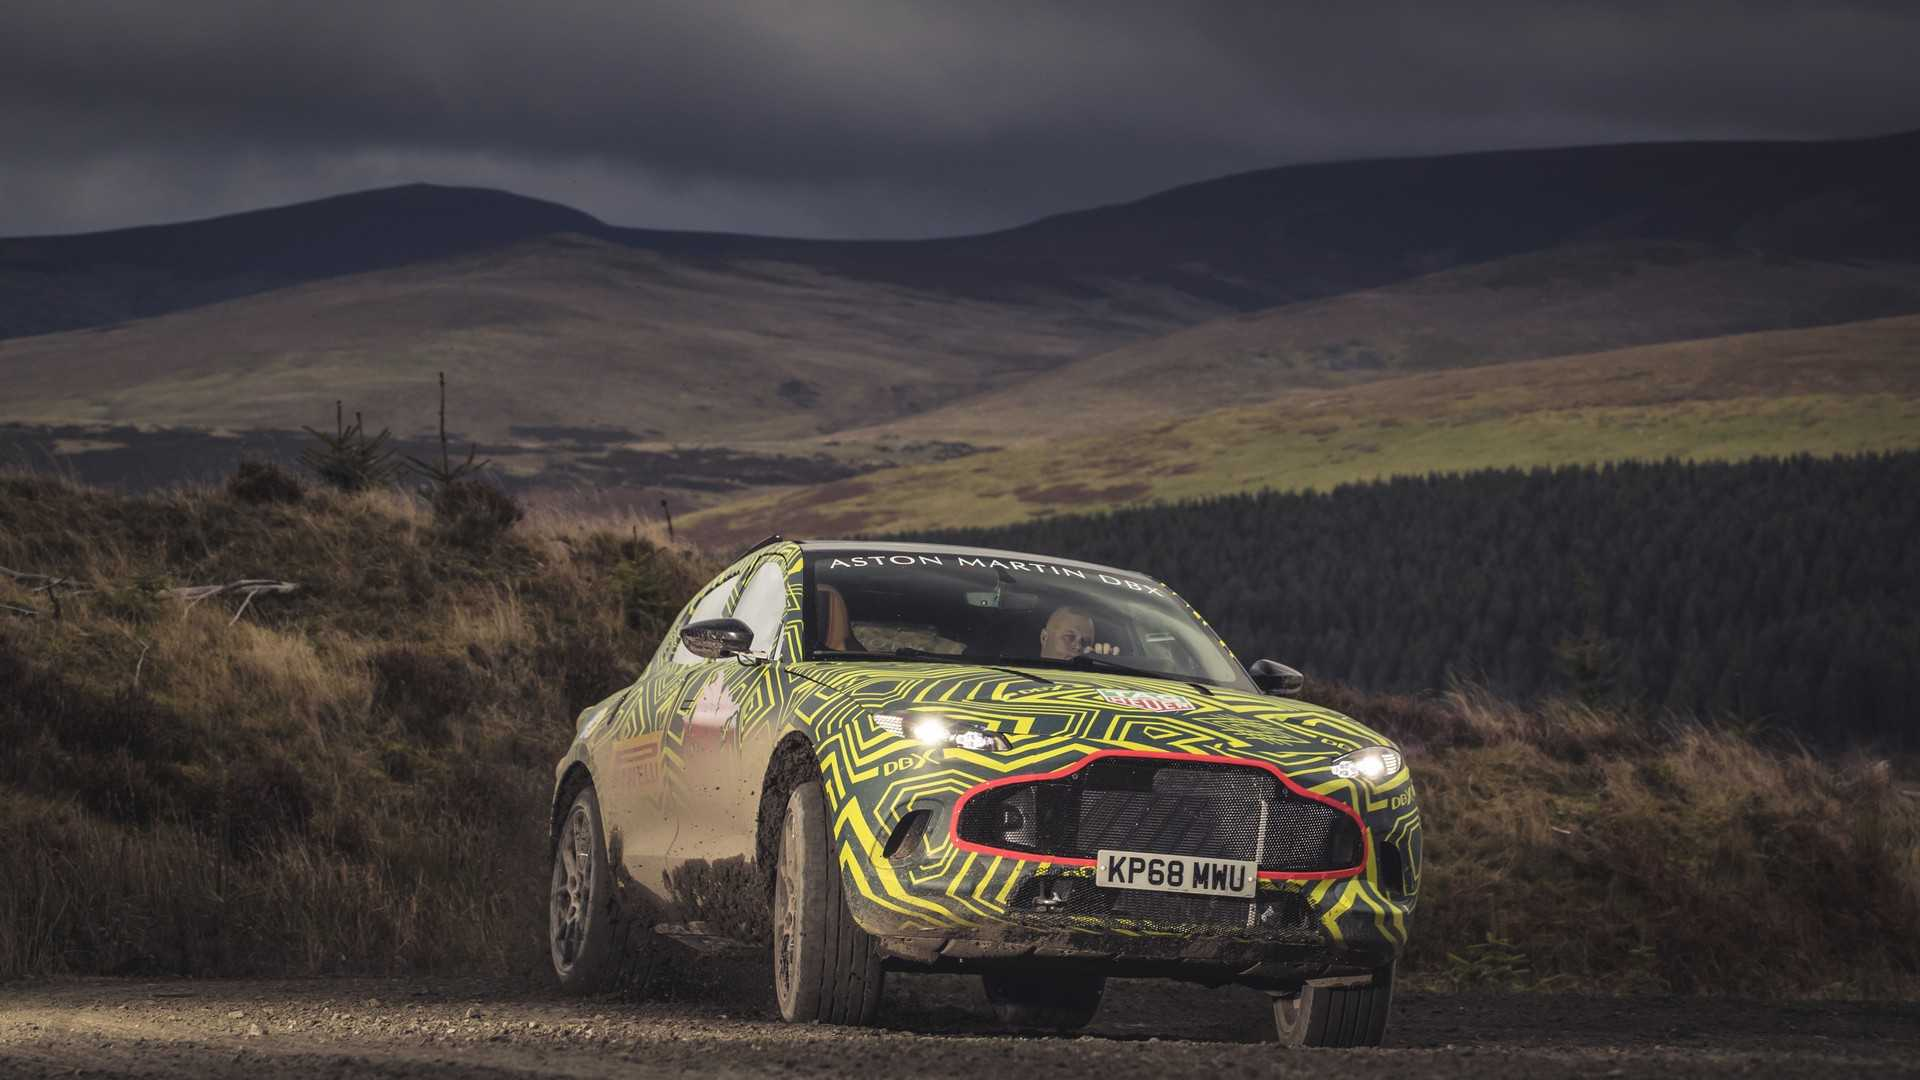 Aston Martin reveals DBX prototype as testing gets underway